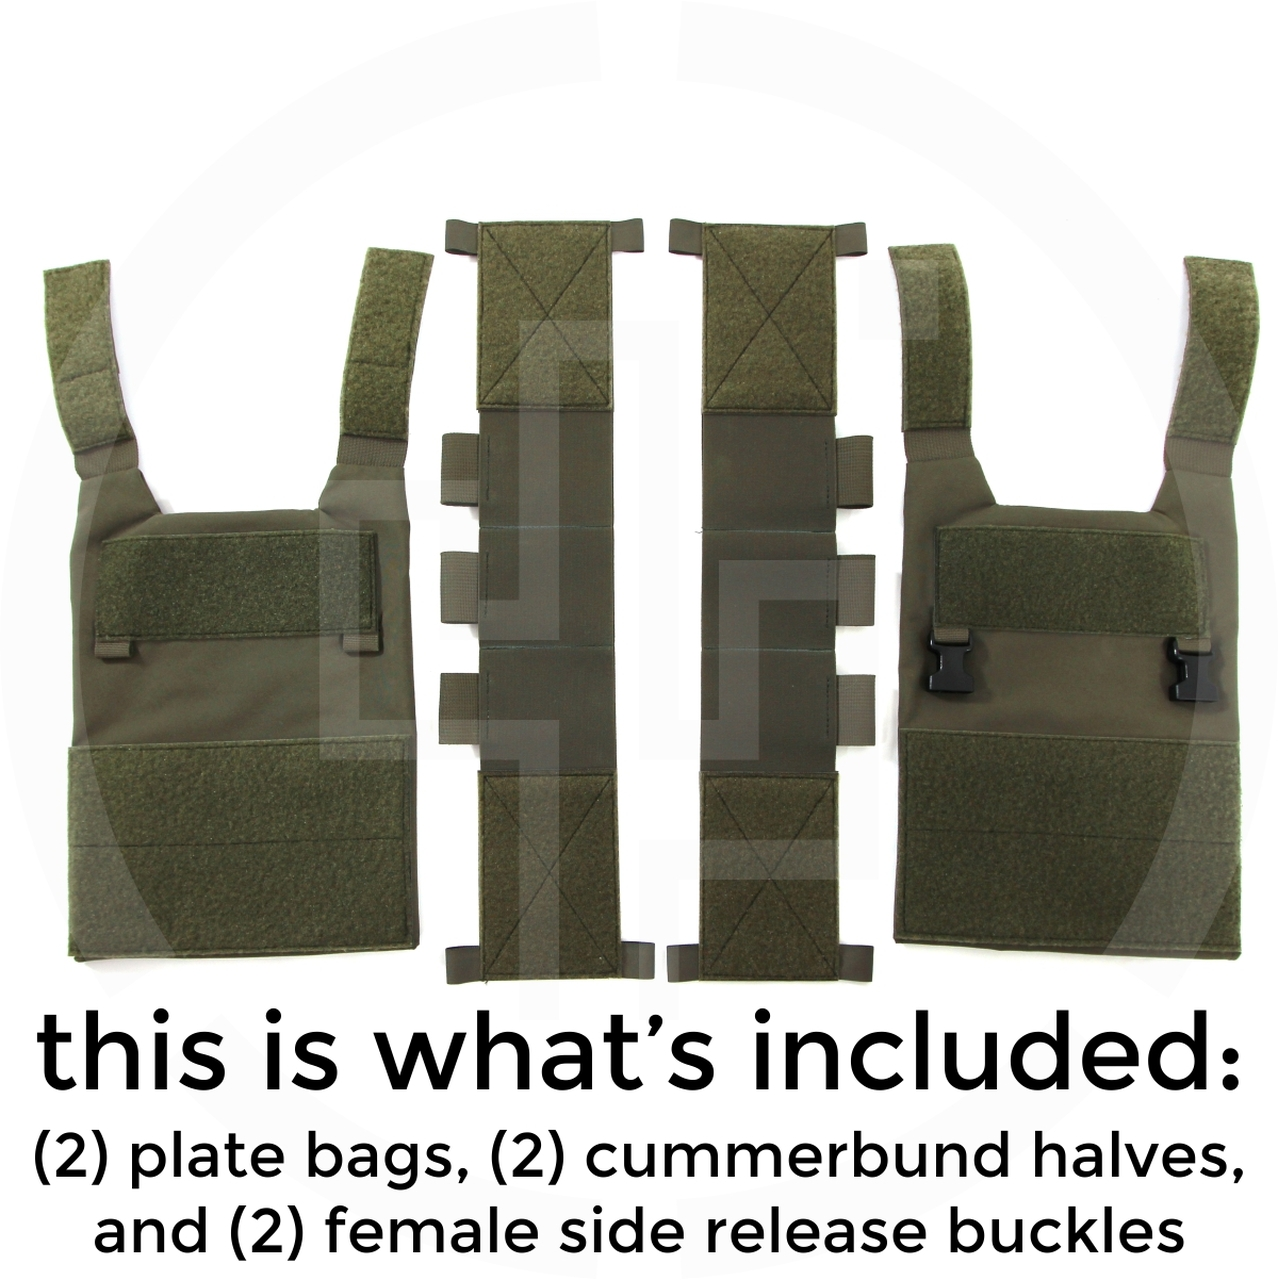 Plate Carrier 13 Specifications: Weight: 15.7 ounces with Cummerbund Plate Compatibility: SAPI, 10x12, Hoplite,Hesco 3810, L210 RMA 1092 RMA 1155 Included Pieces: Front and Rear Plate Bags and Two Cummerbund sections